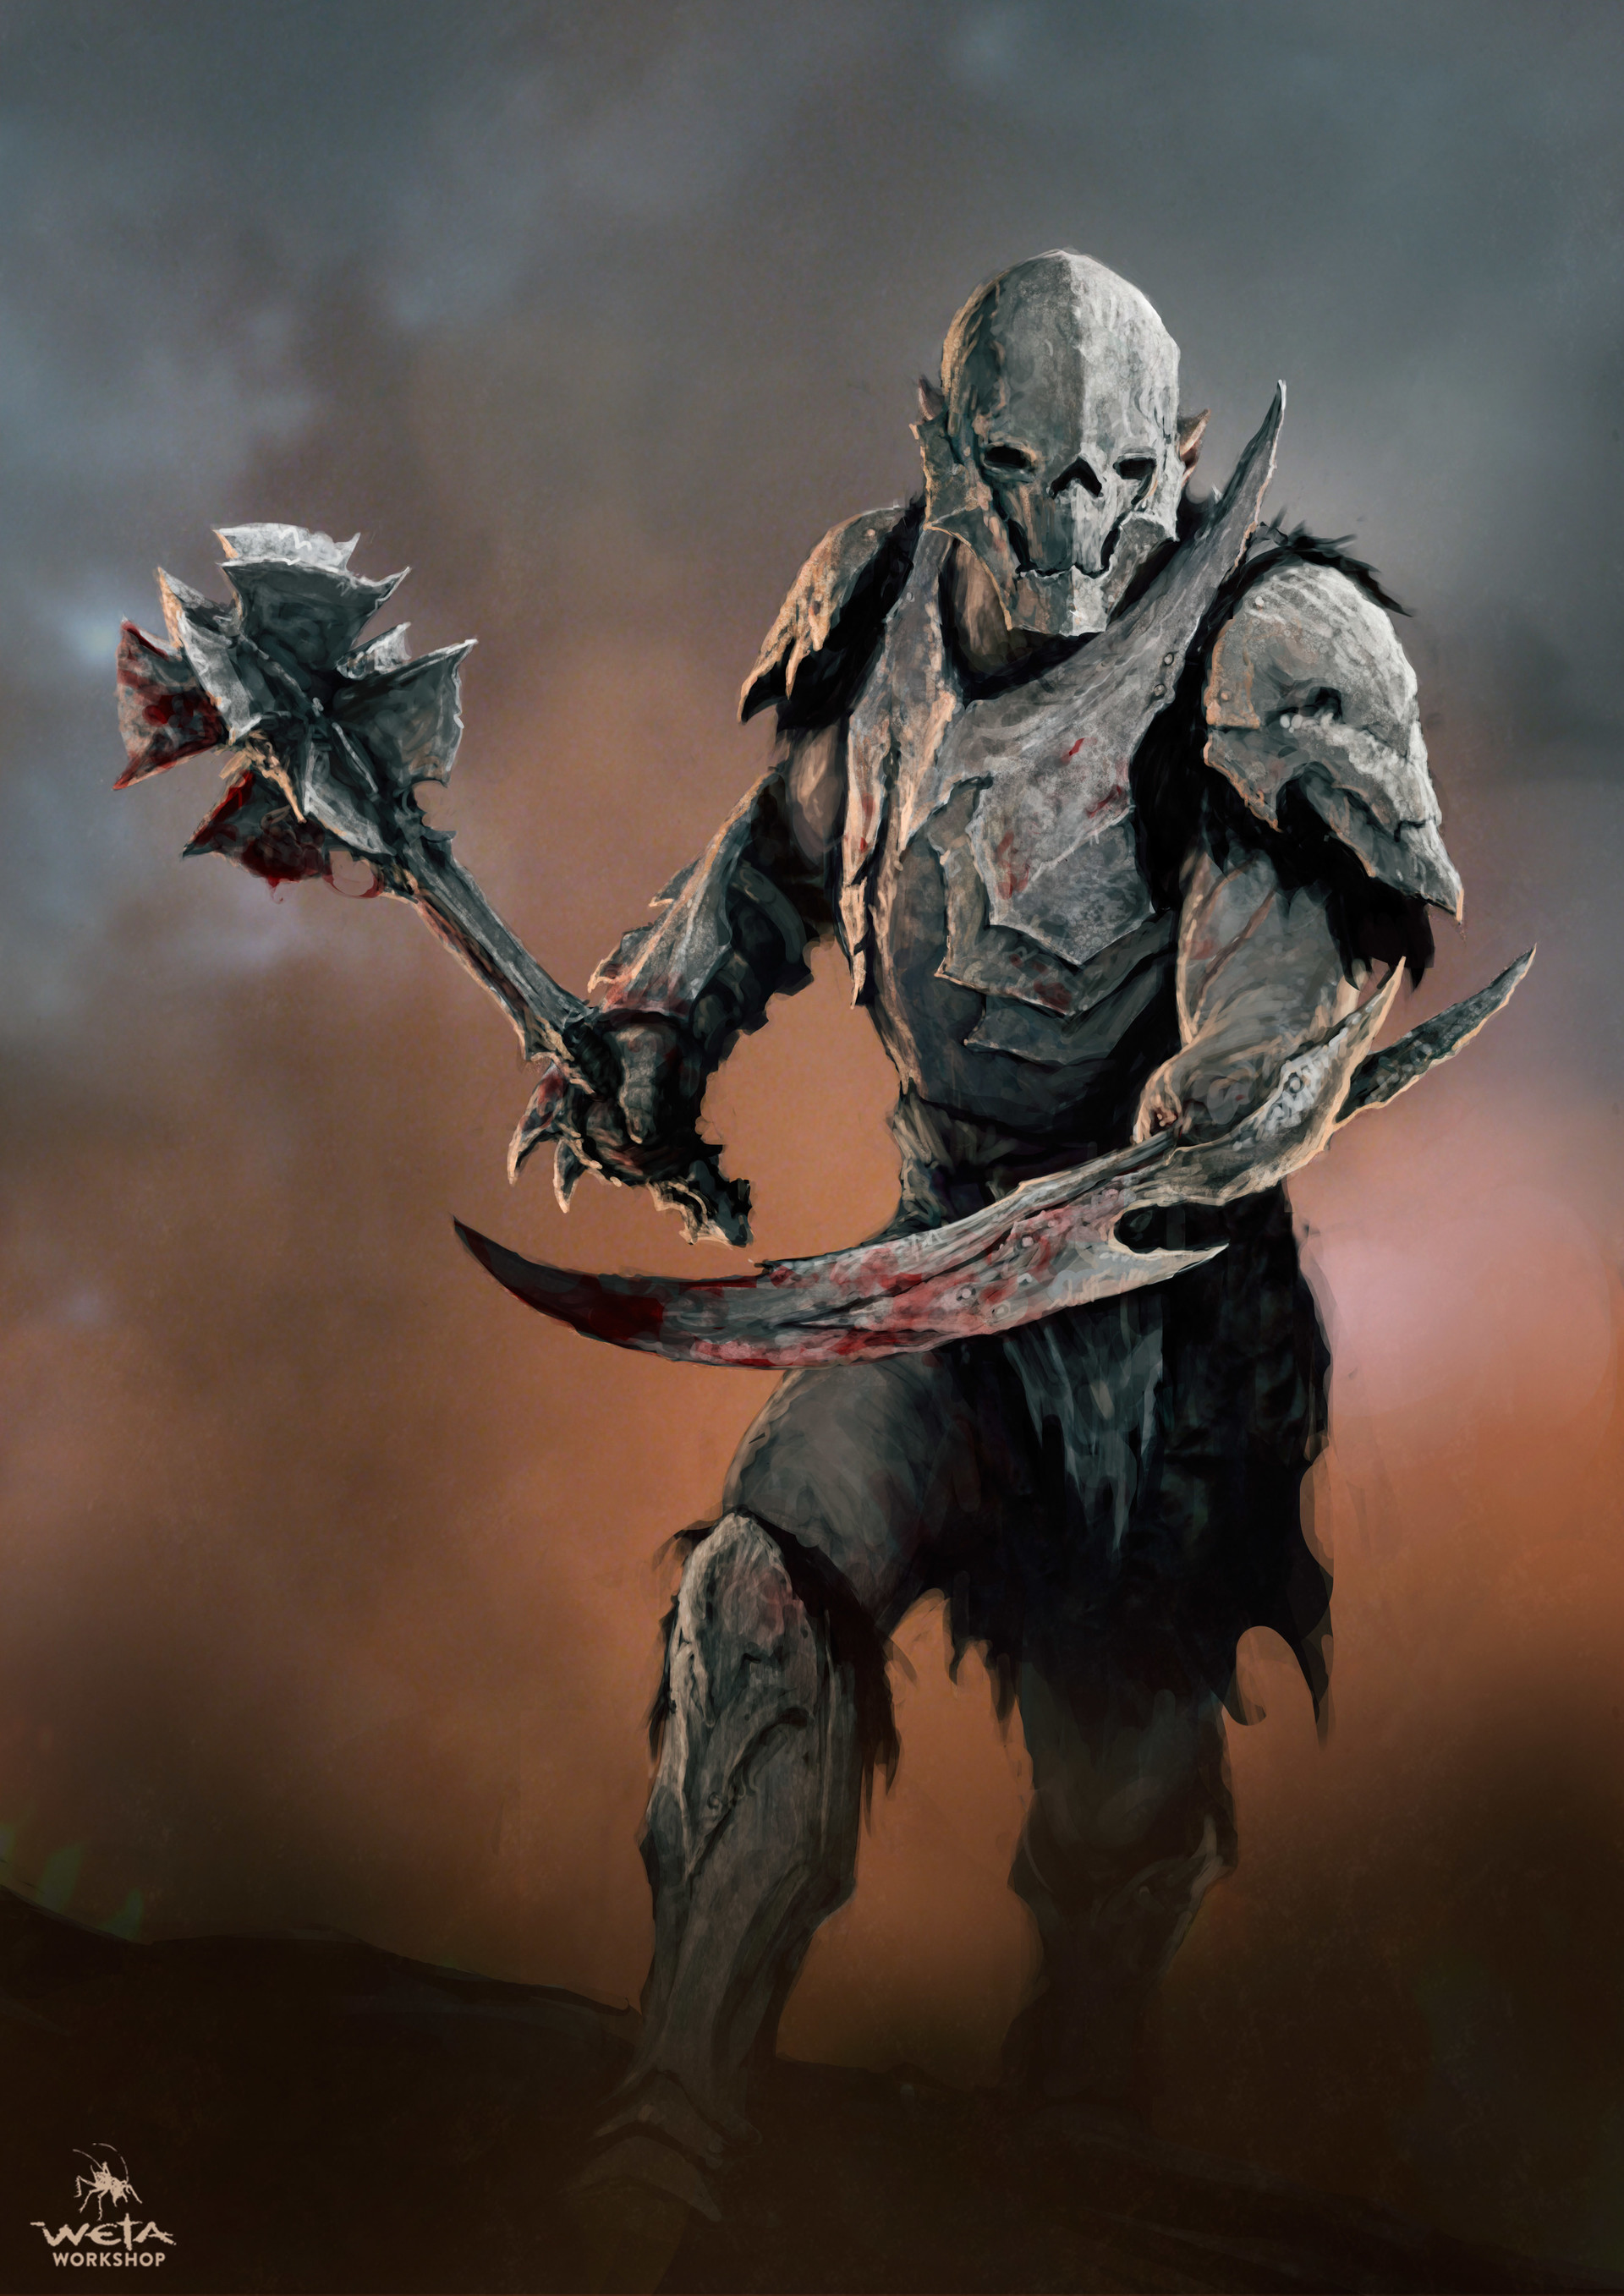 https://cdna.artstation.com/p/assets/images/images/004/156/204/large/weta-workshop-design-studio-8607-azog-armour-10-nk.jpg?1480894695